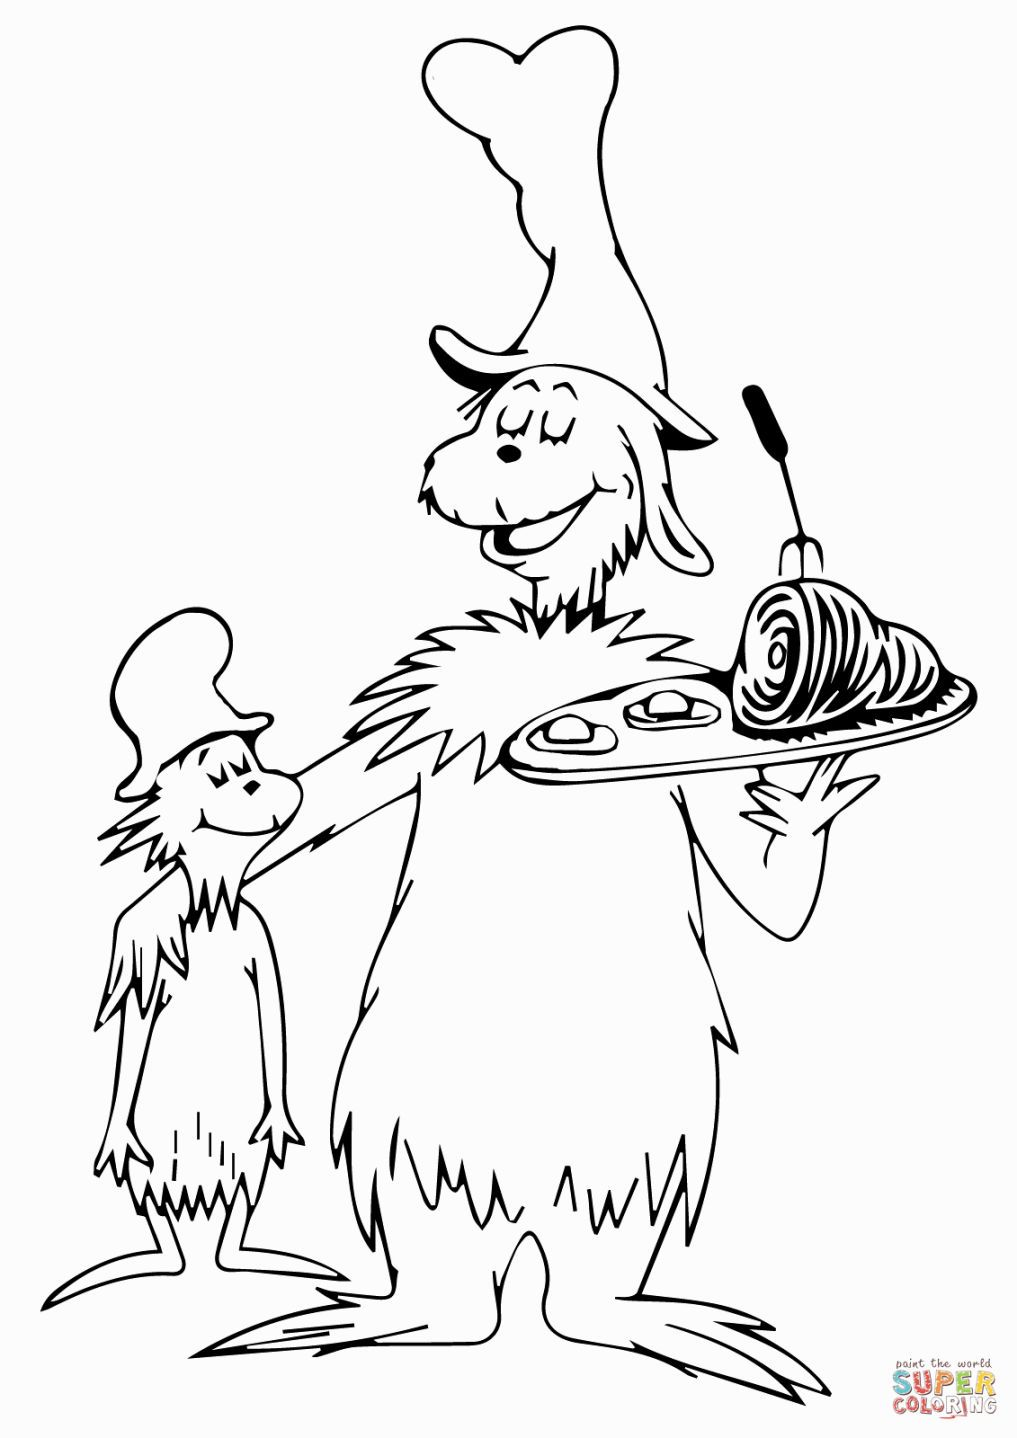 printable dr seuss coloring pages | Coloring Sheets Dr Seuss | Dr seuss coloring pages, Dr ...